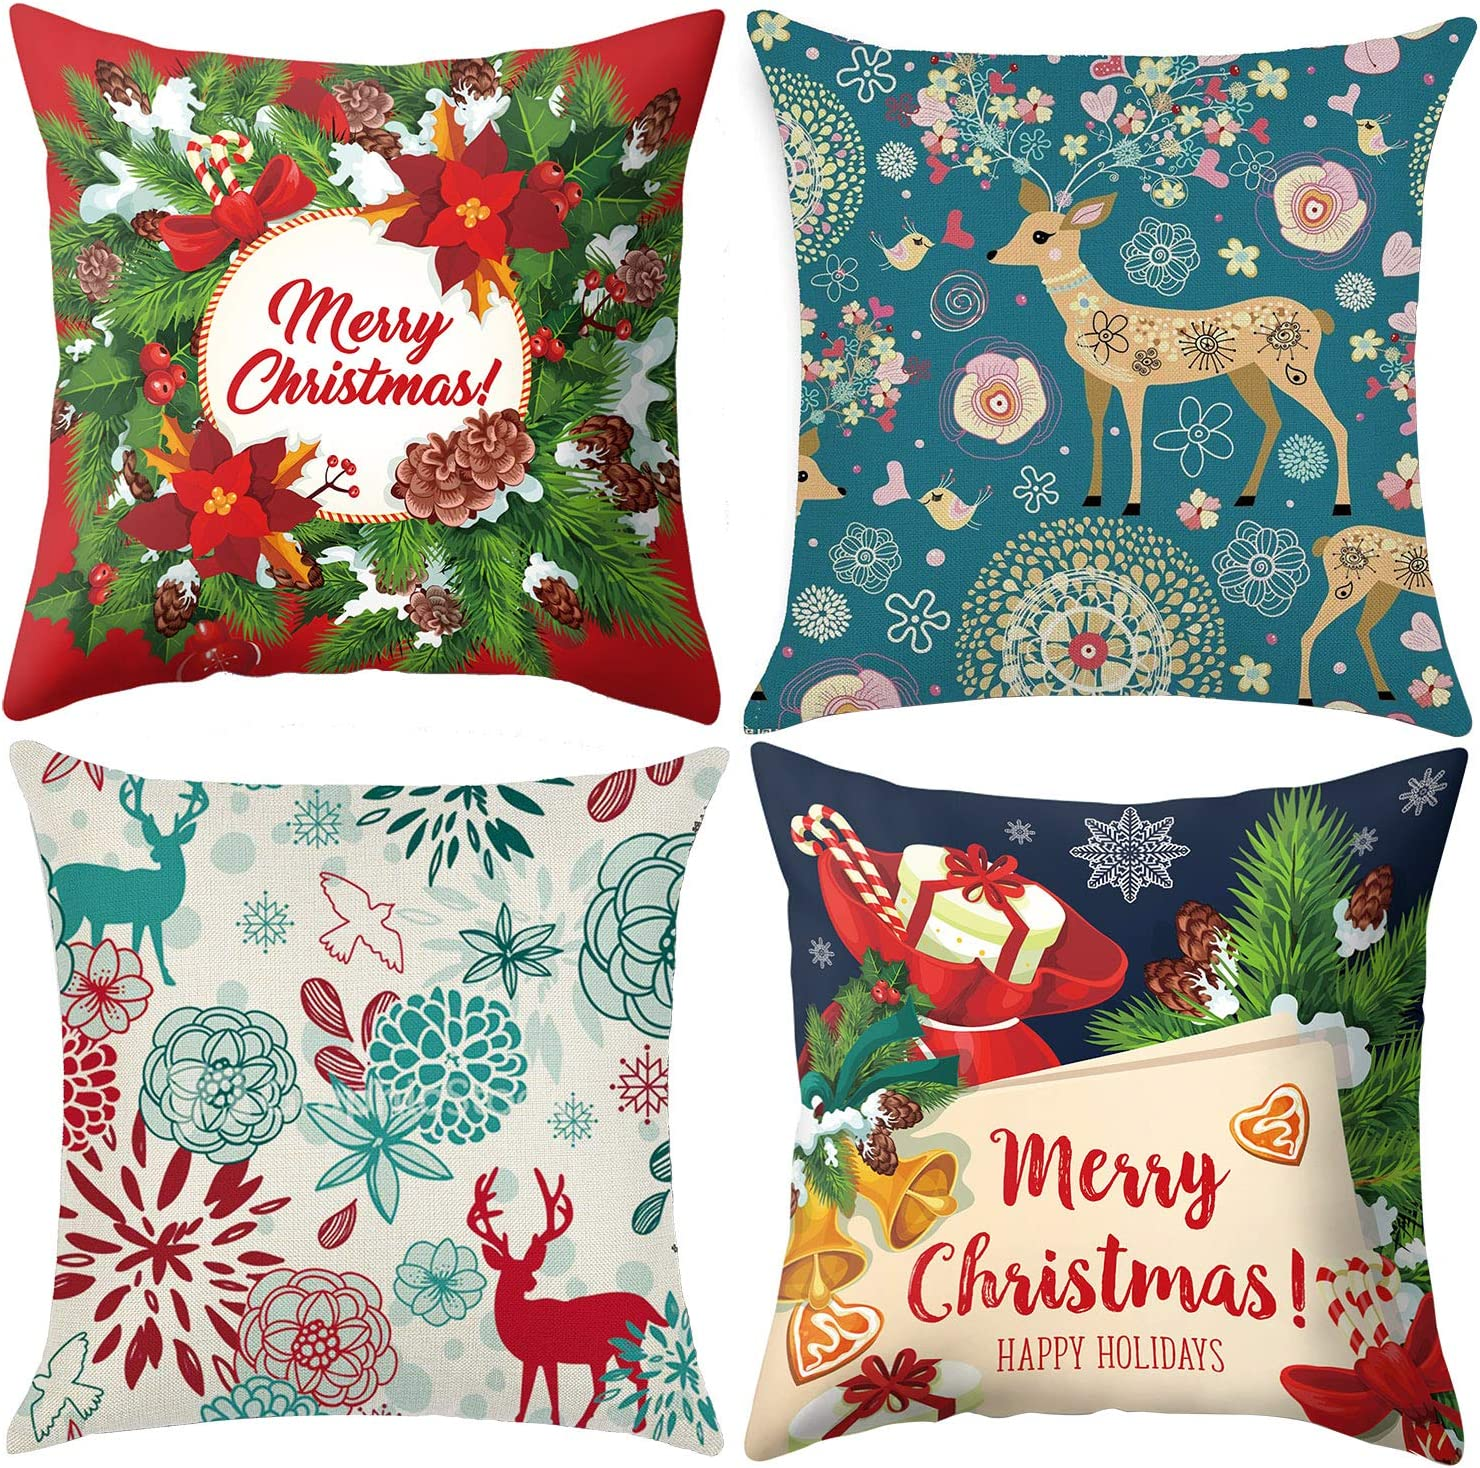 Colorful Christmas Pillow Covers